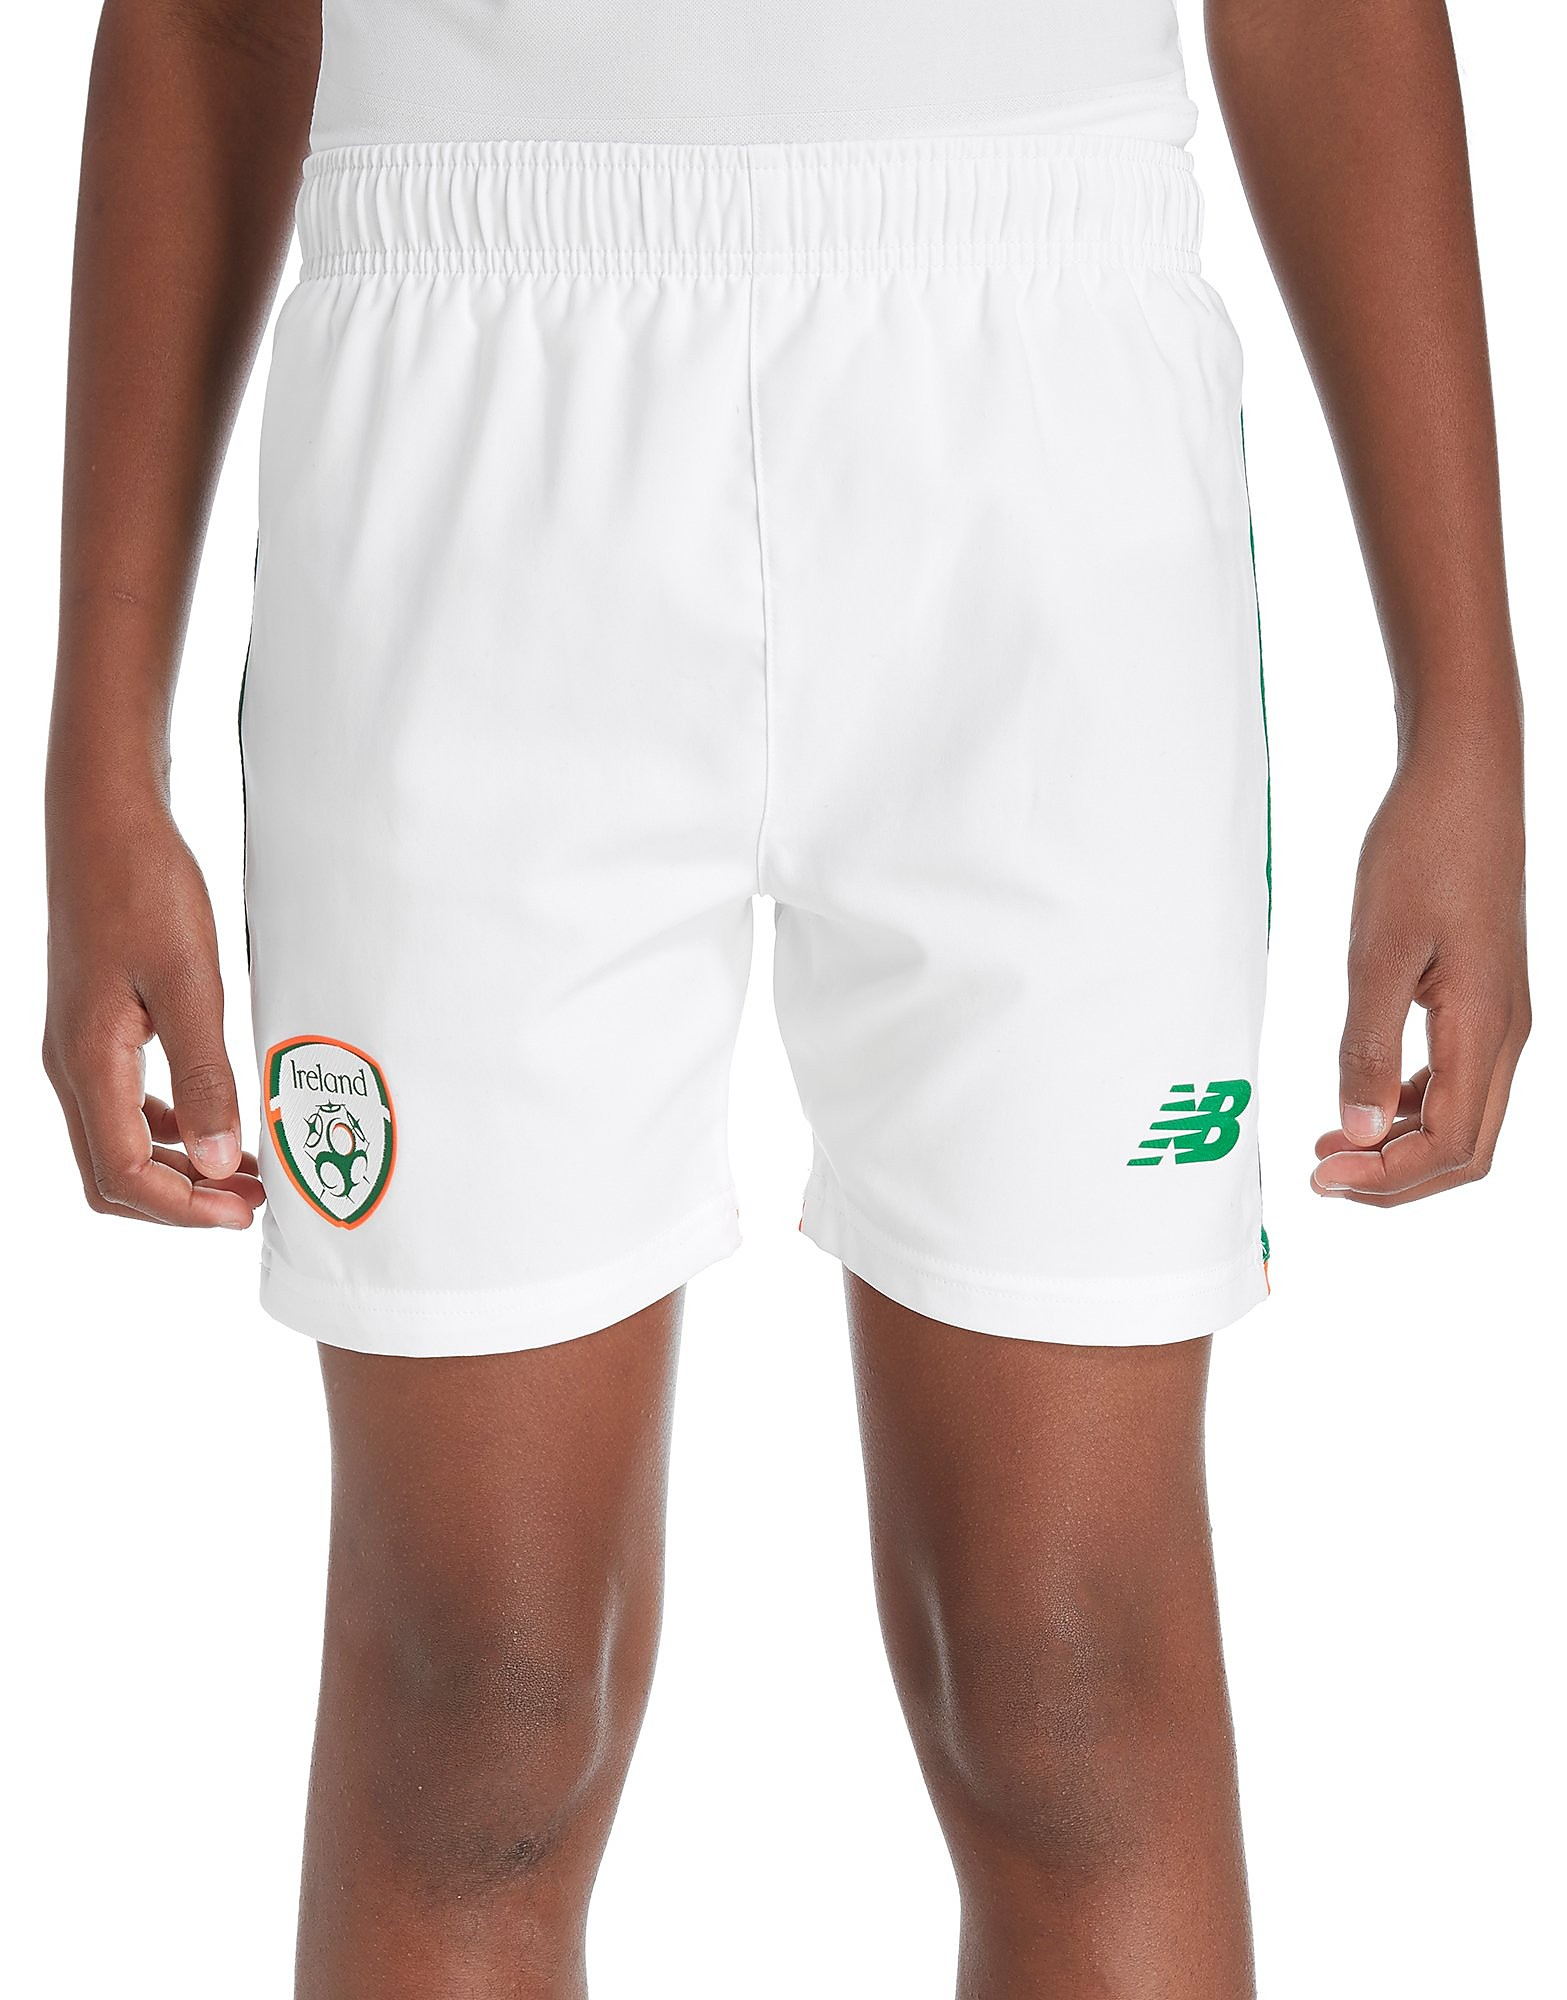 New Balance Republic of Ireland 2017/18 Home Shorts Junior